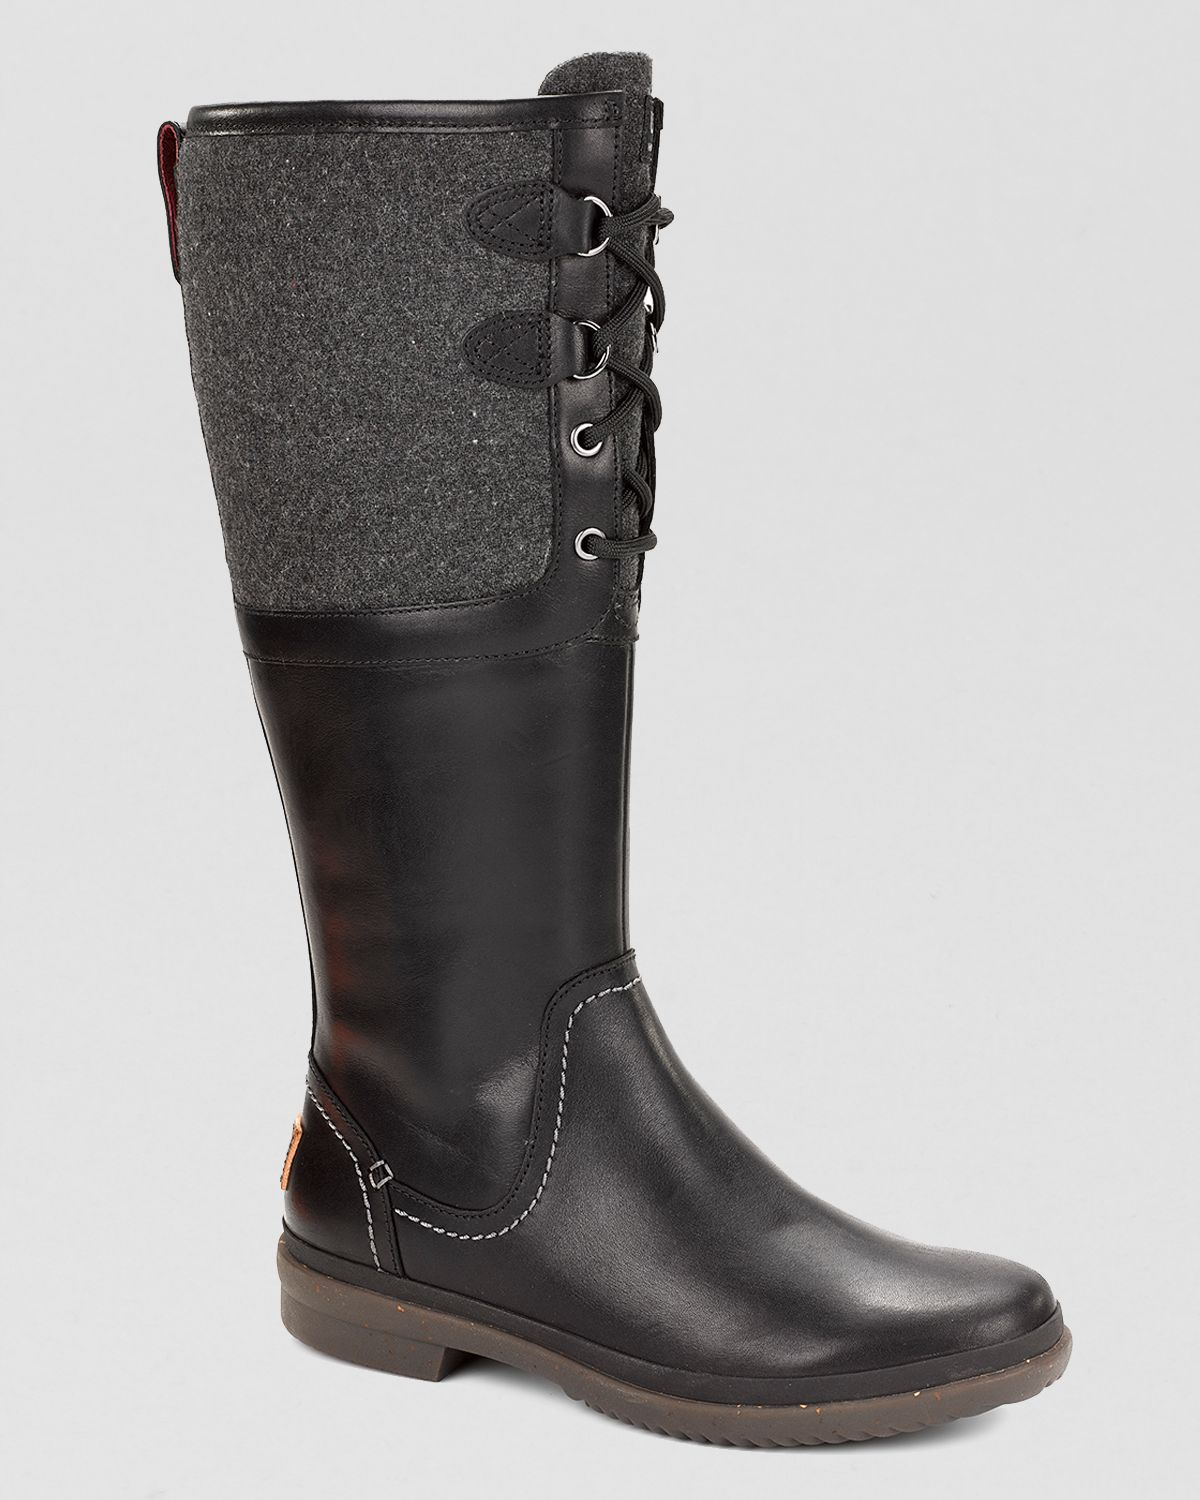 womens ugg 'elsa' boot in black